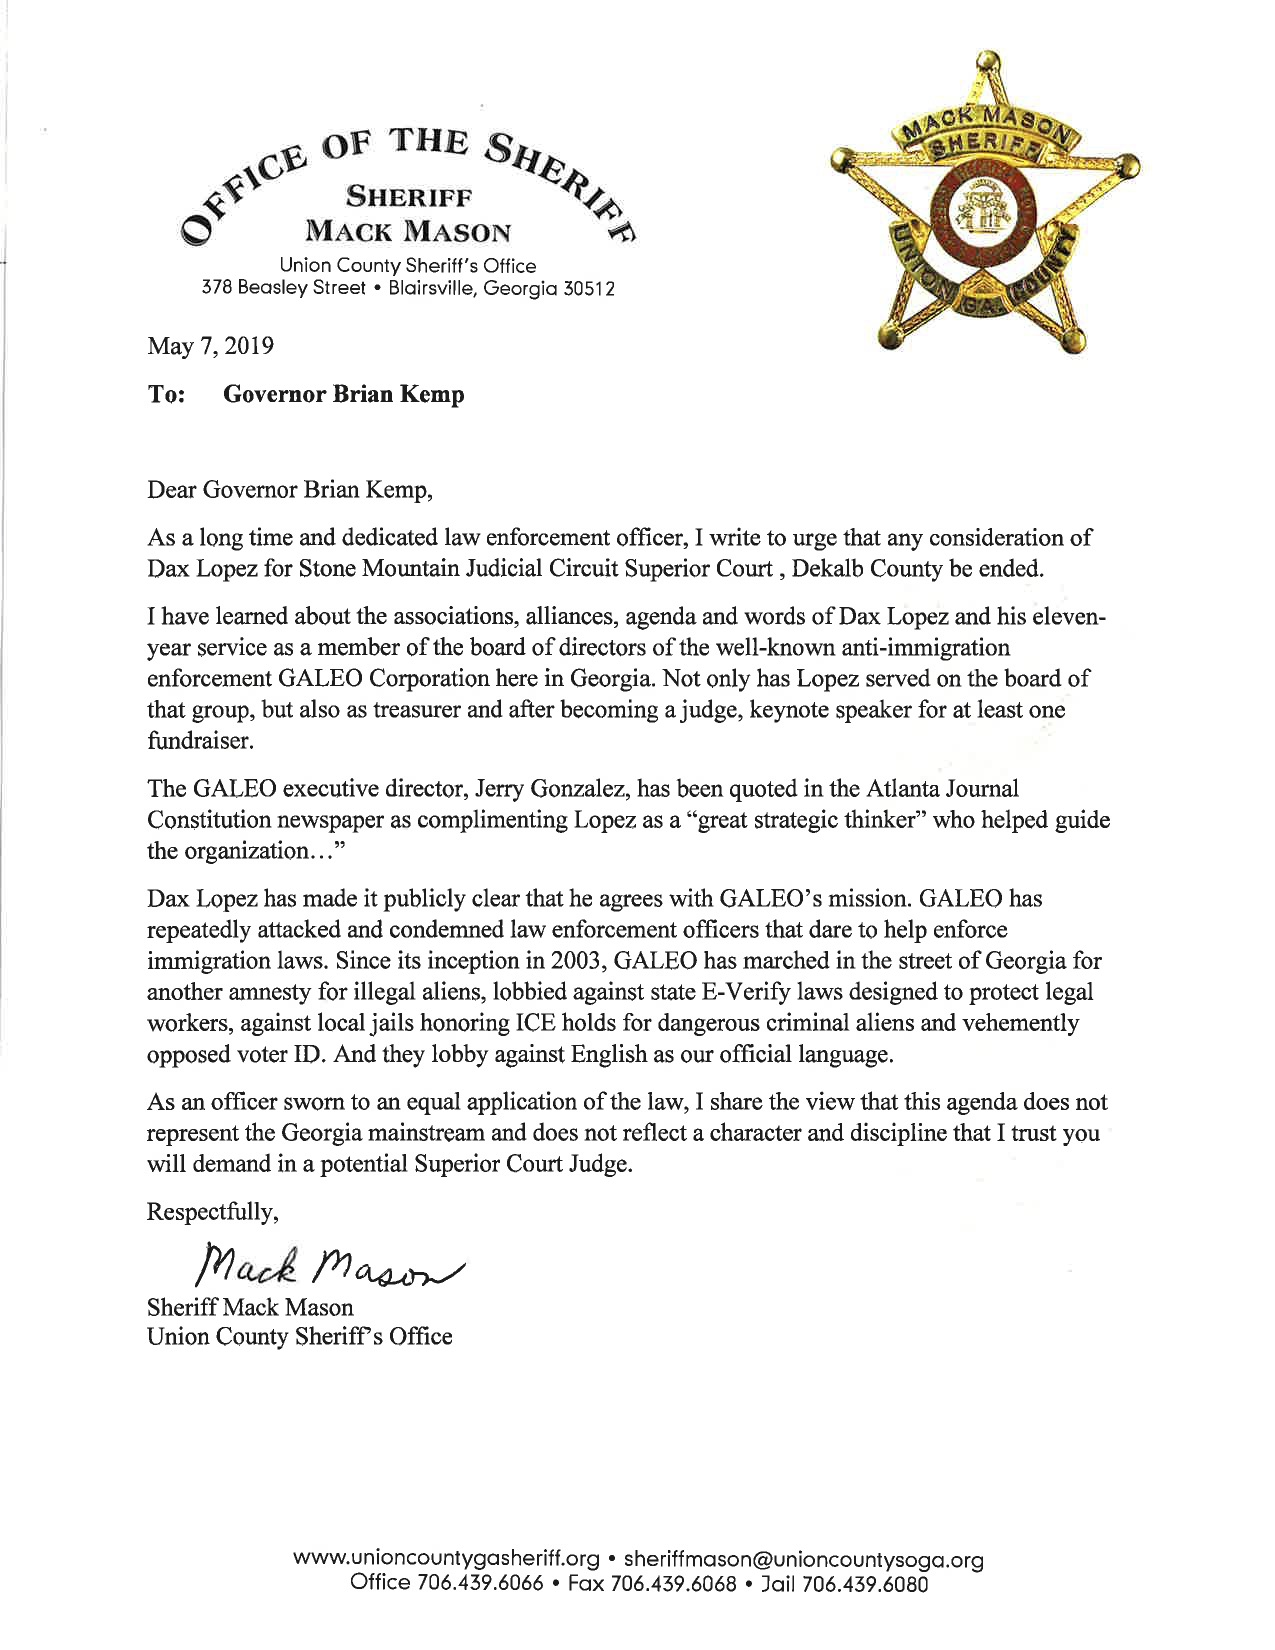 The Dustin Inman Society Blog » Letter to Governor Brian Kemp from